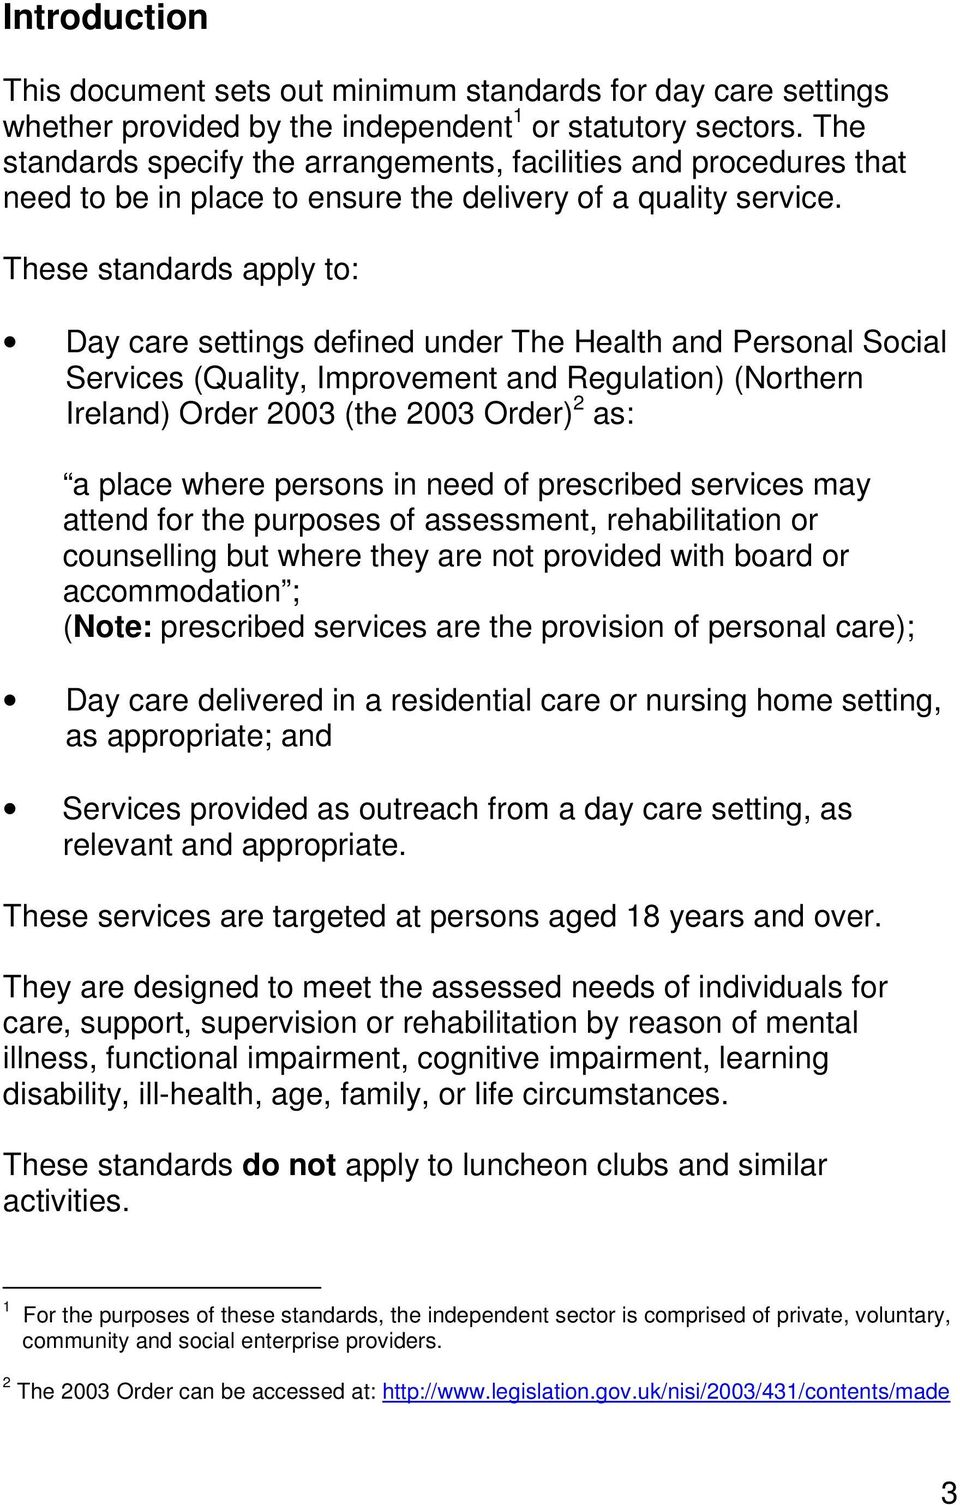 These standards apply to: Day care settings defined under The Health and Personal Social Services (Quality, Improvement and Regulation) (Northern Ireland) Order 2003 (the 2003 Order) 2 as: a place